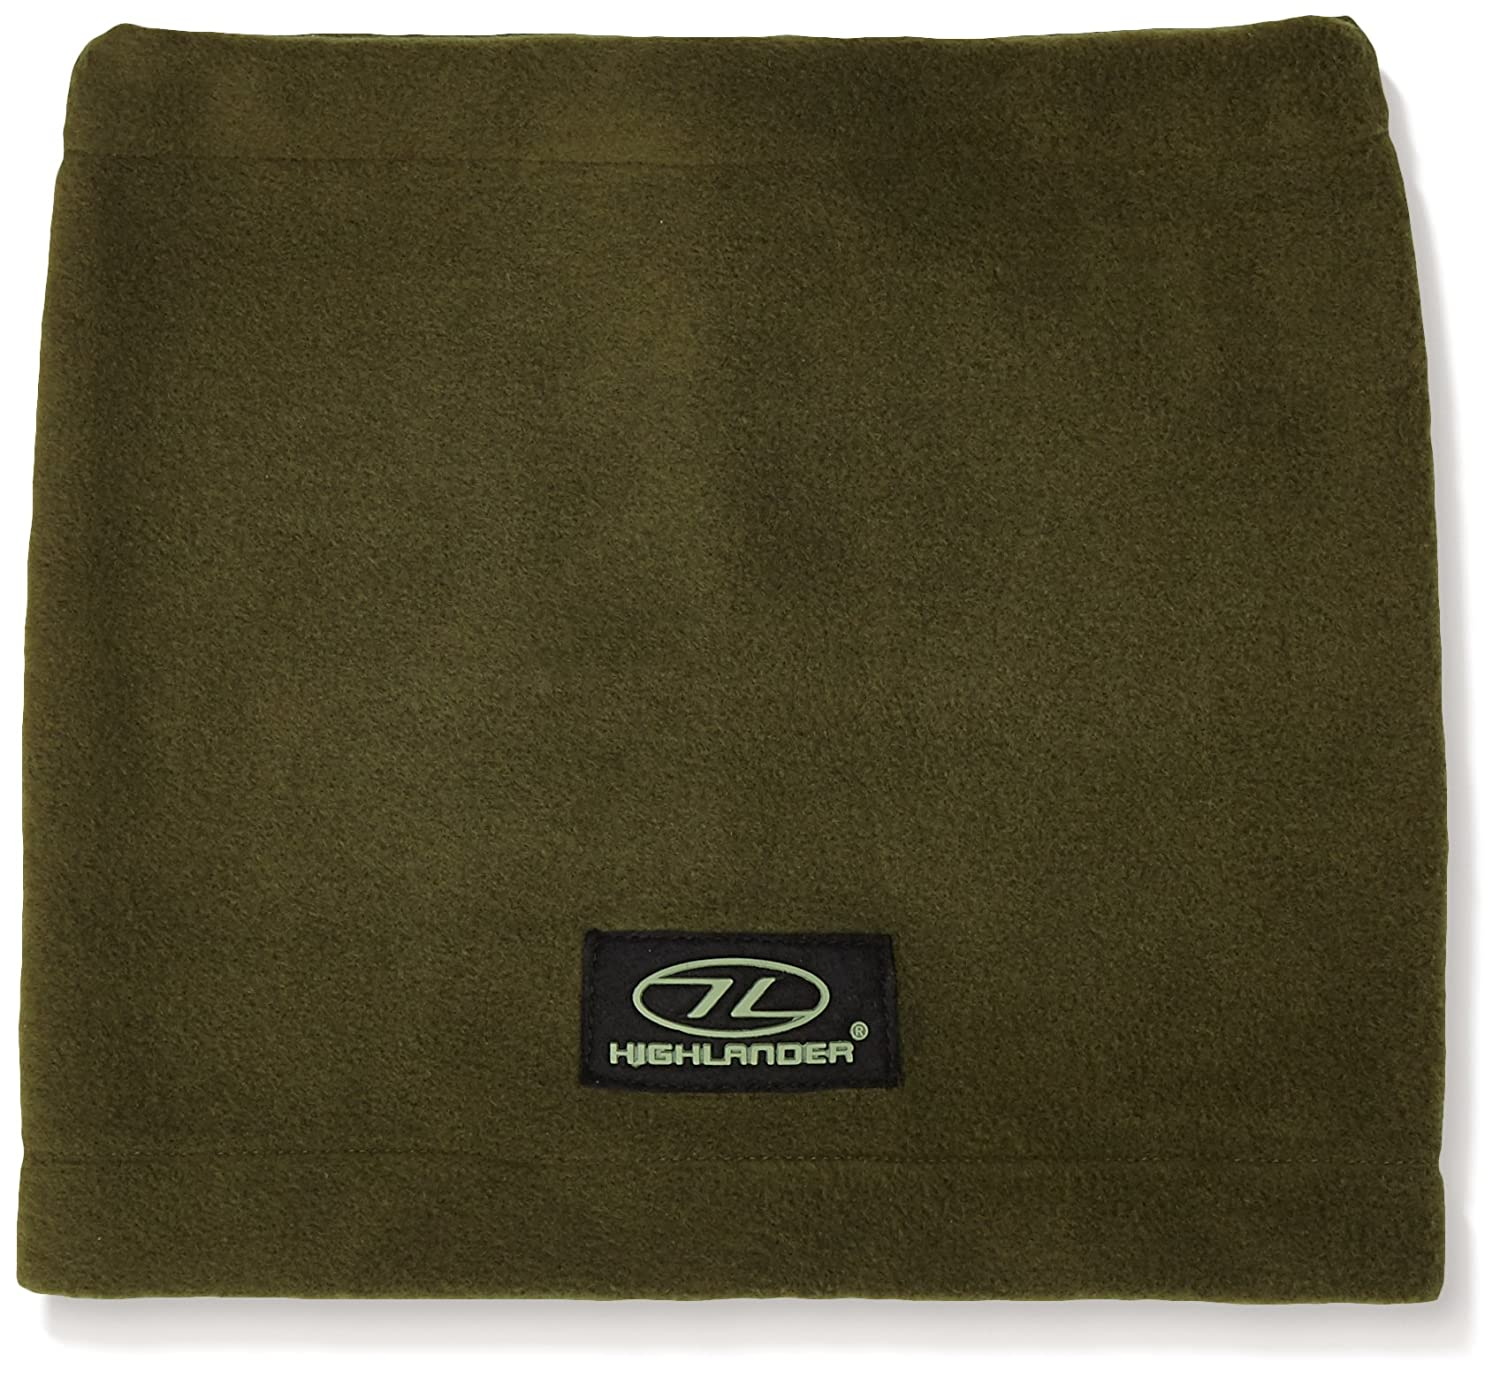 Highlander Polar Fleece Neckwarmer ― Available in Black and Olive Green ― Great Snood for Autumn/Winter, Skiing, Walks, Hiking, Motorbikes, Cycling, Dog walkers